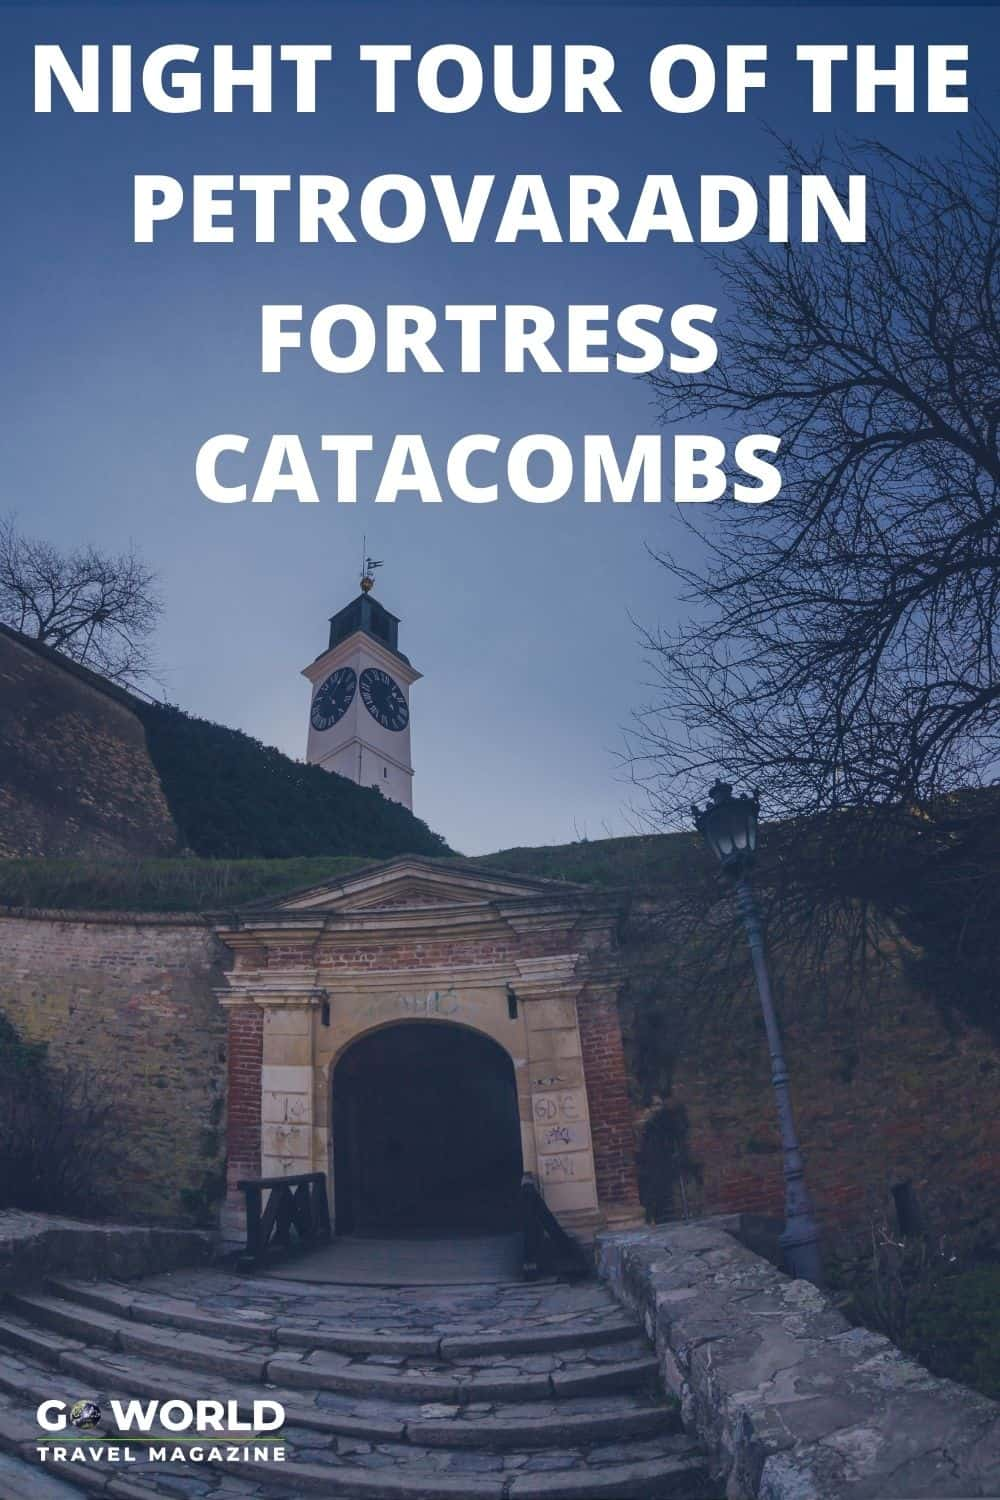 Visit the Petrovaradin Fortress in Serbia at night with a guided tour of the creepy catacombs complete with ghost stories and spooky legends. #travelserbia #petrovaradinfortressserbia